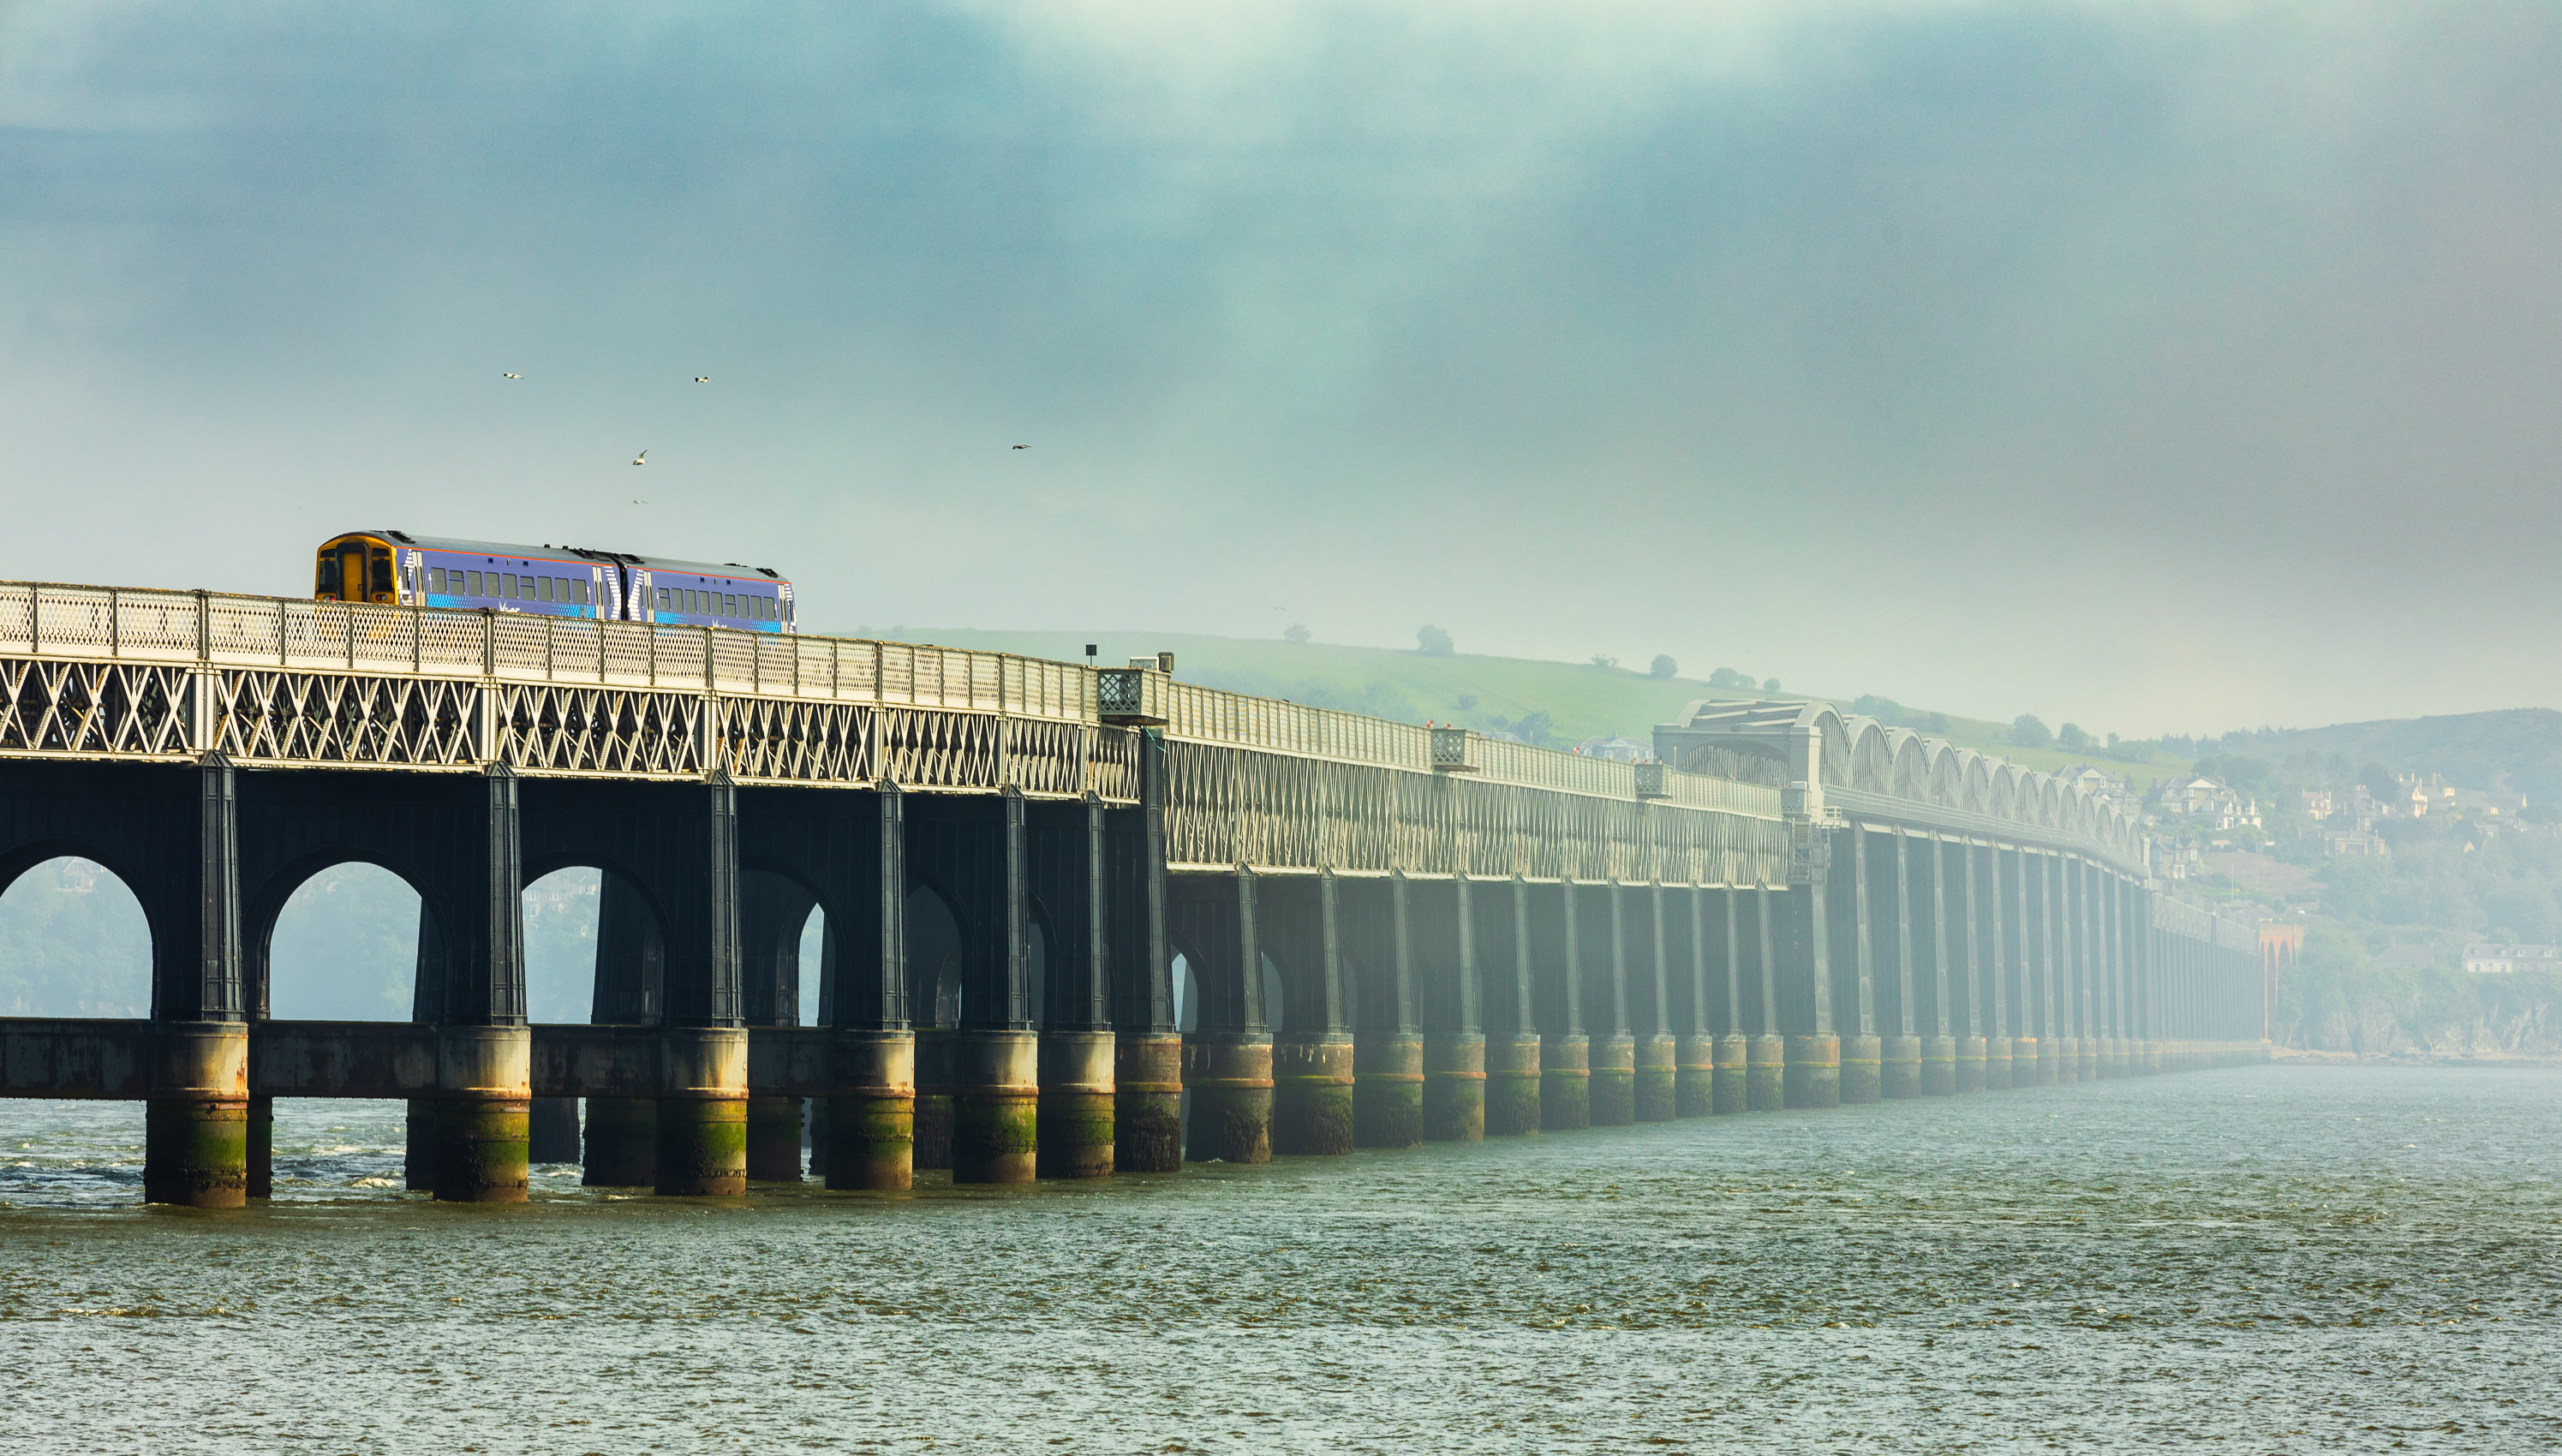 Train passing across the Tay Rail Bridge with a fog bank obscuring the Fife side of the Tay, Scotland. DD084